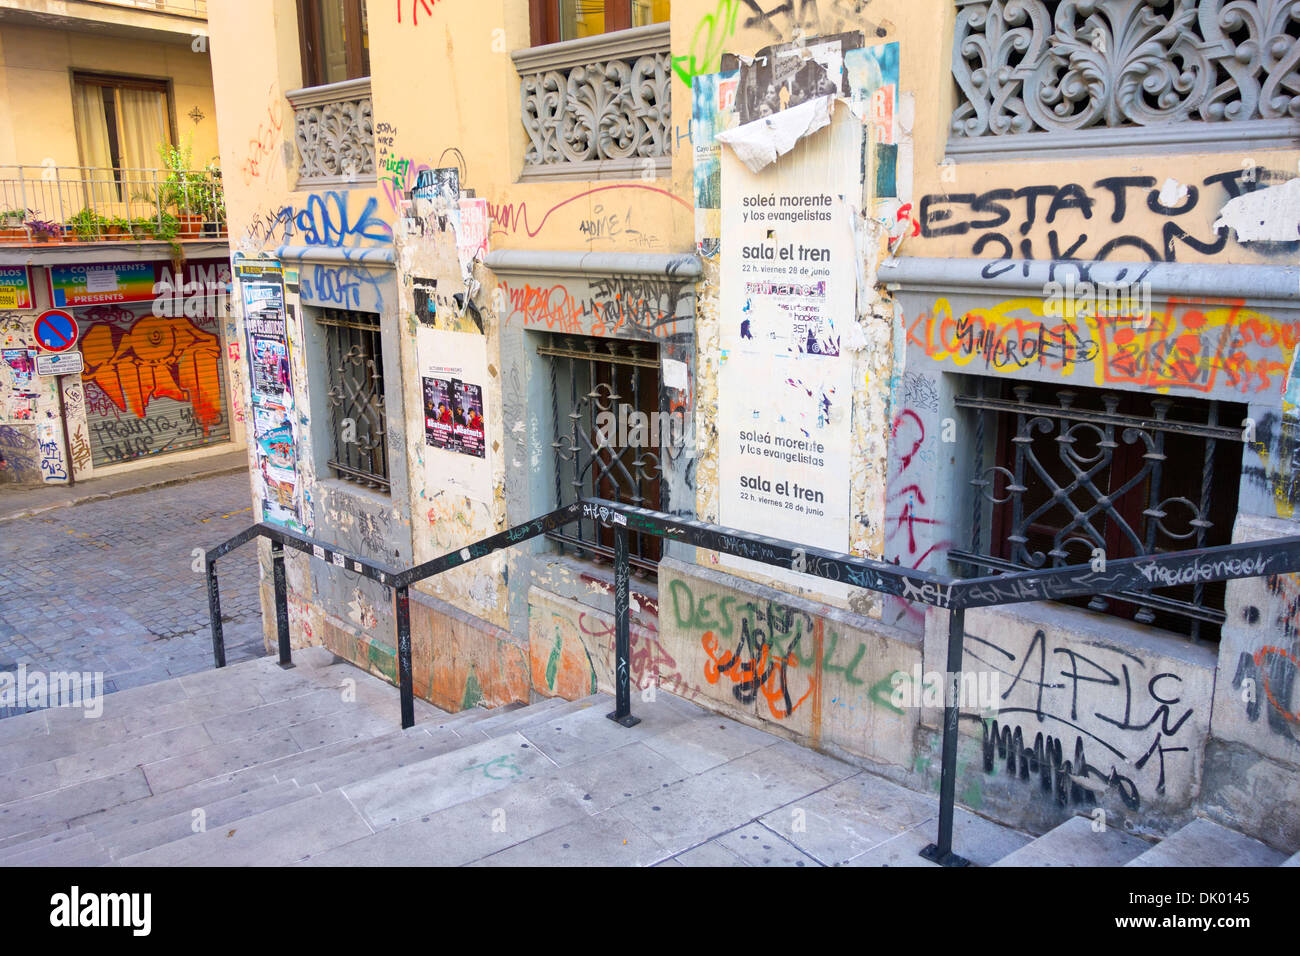 Wall covered in graffiti and fly posting just outside of the main city centre area in Granada Spain - Stock Image